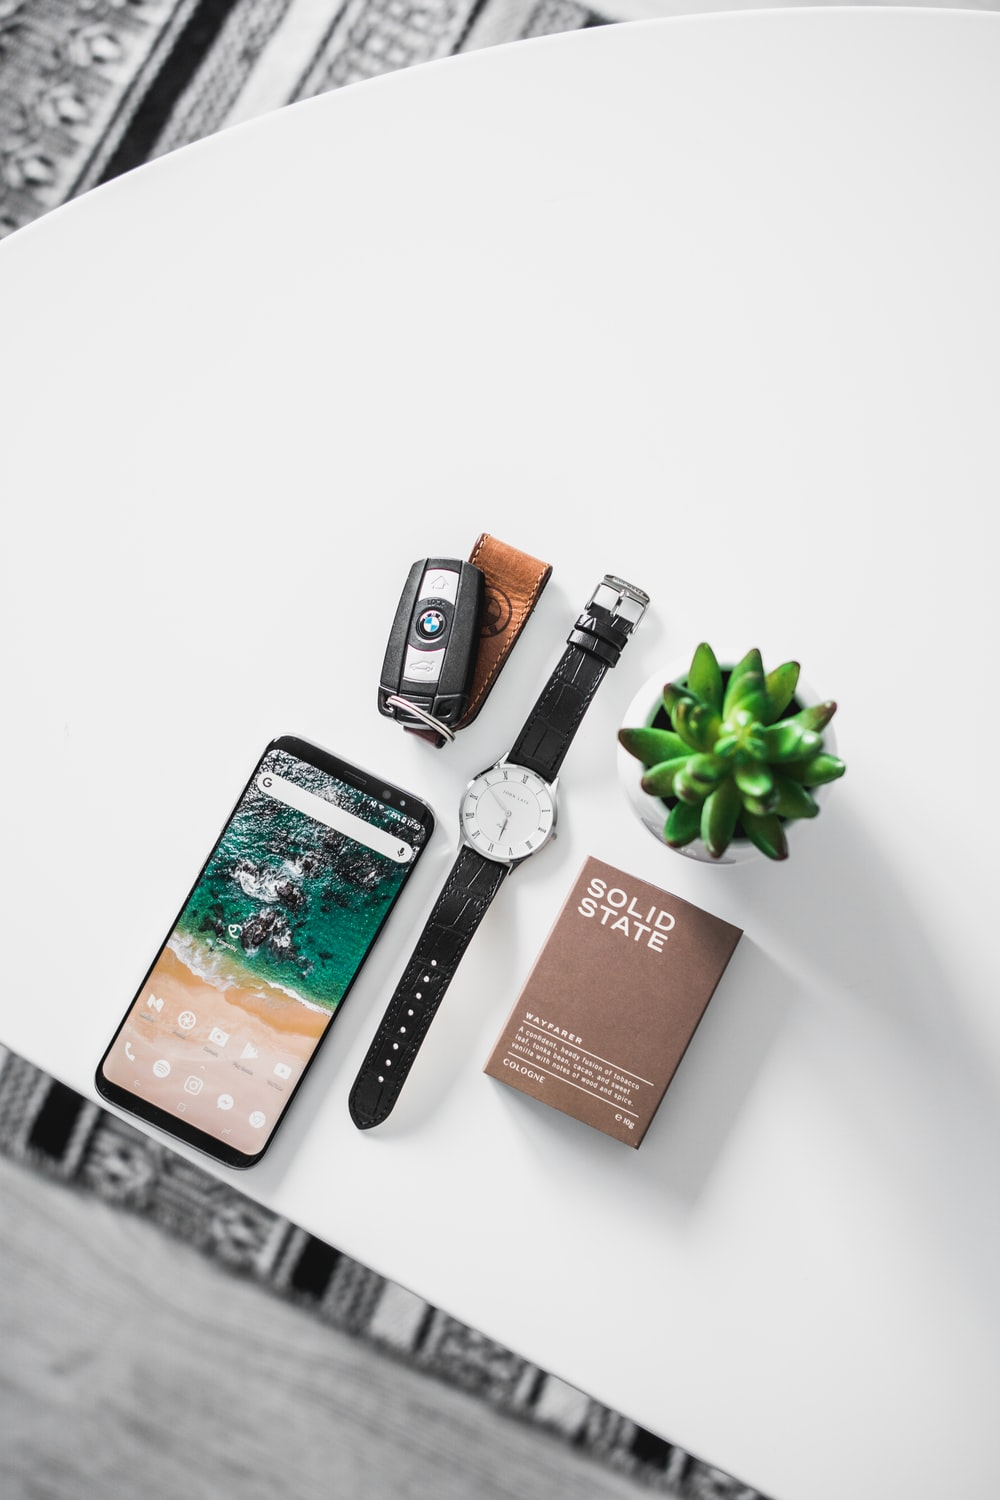 flat lay photography of watch, smartphone, car fob, and box